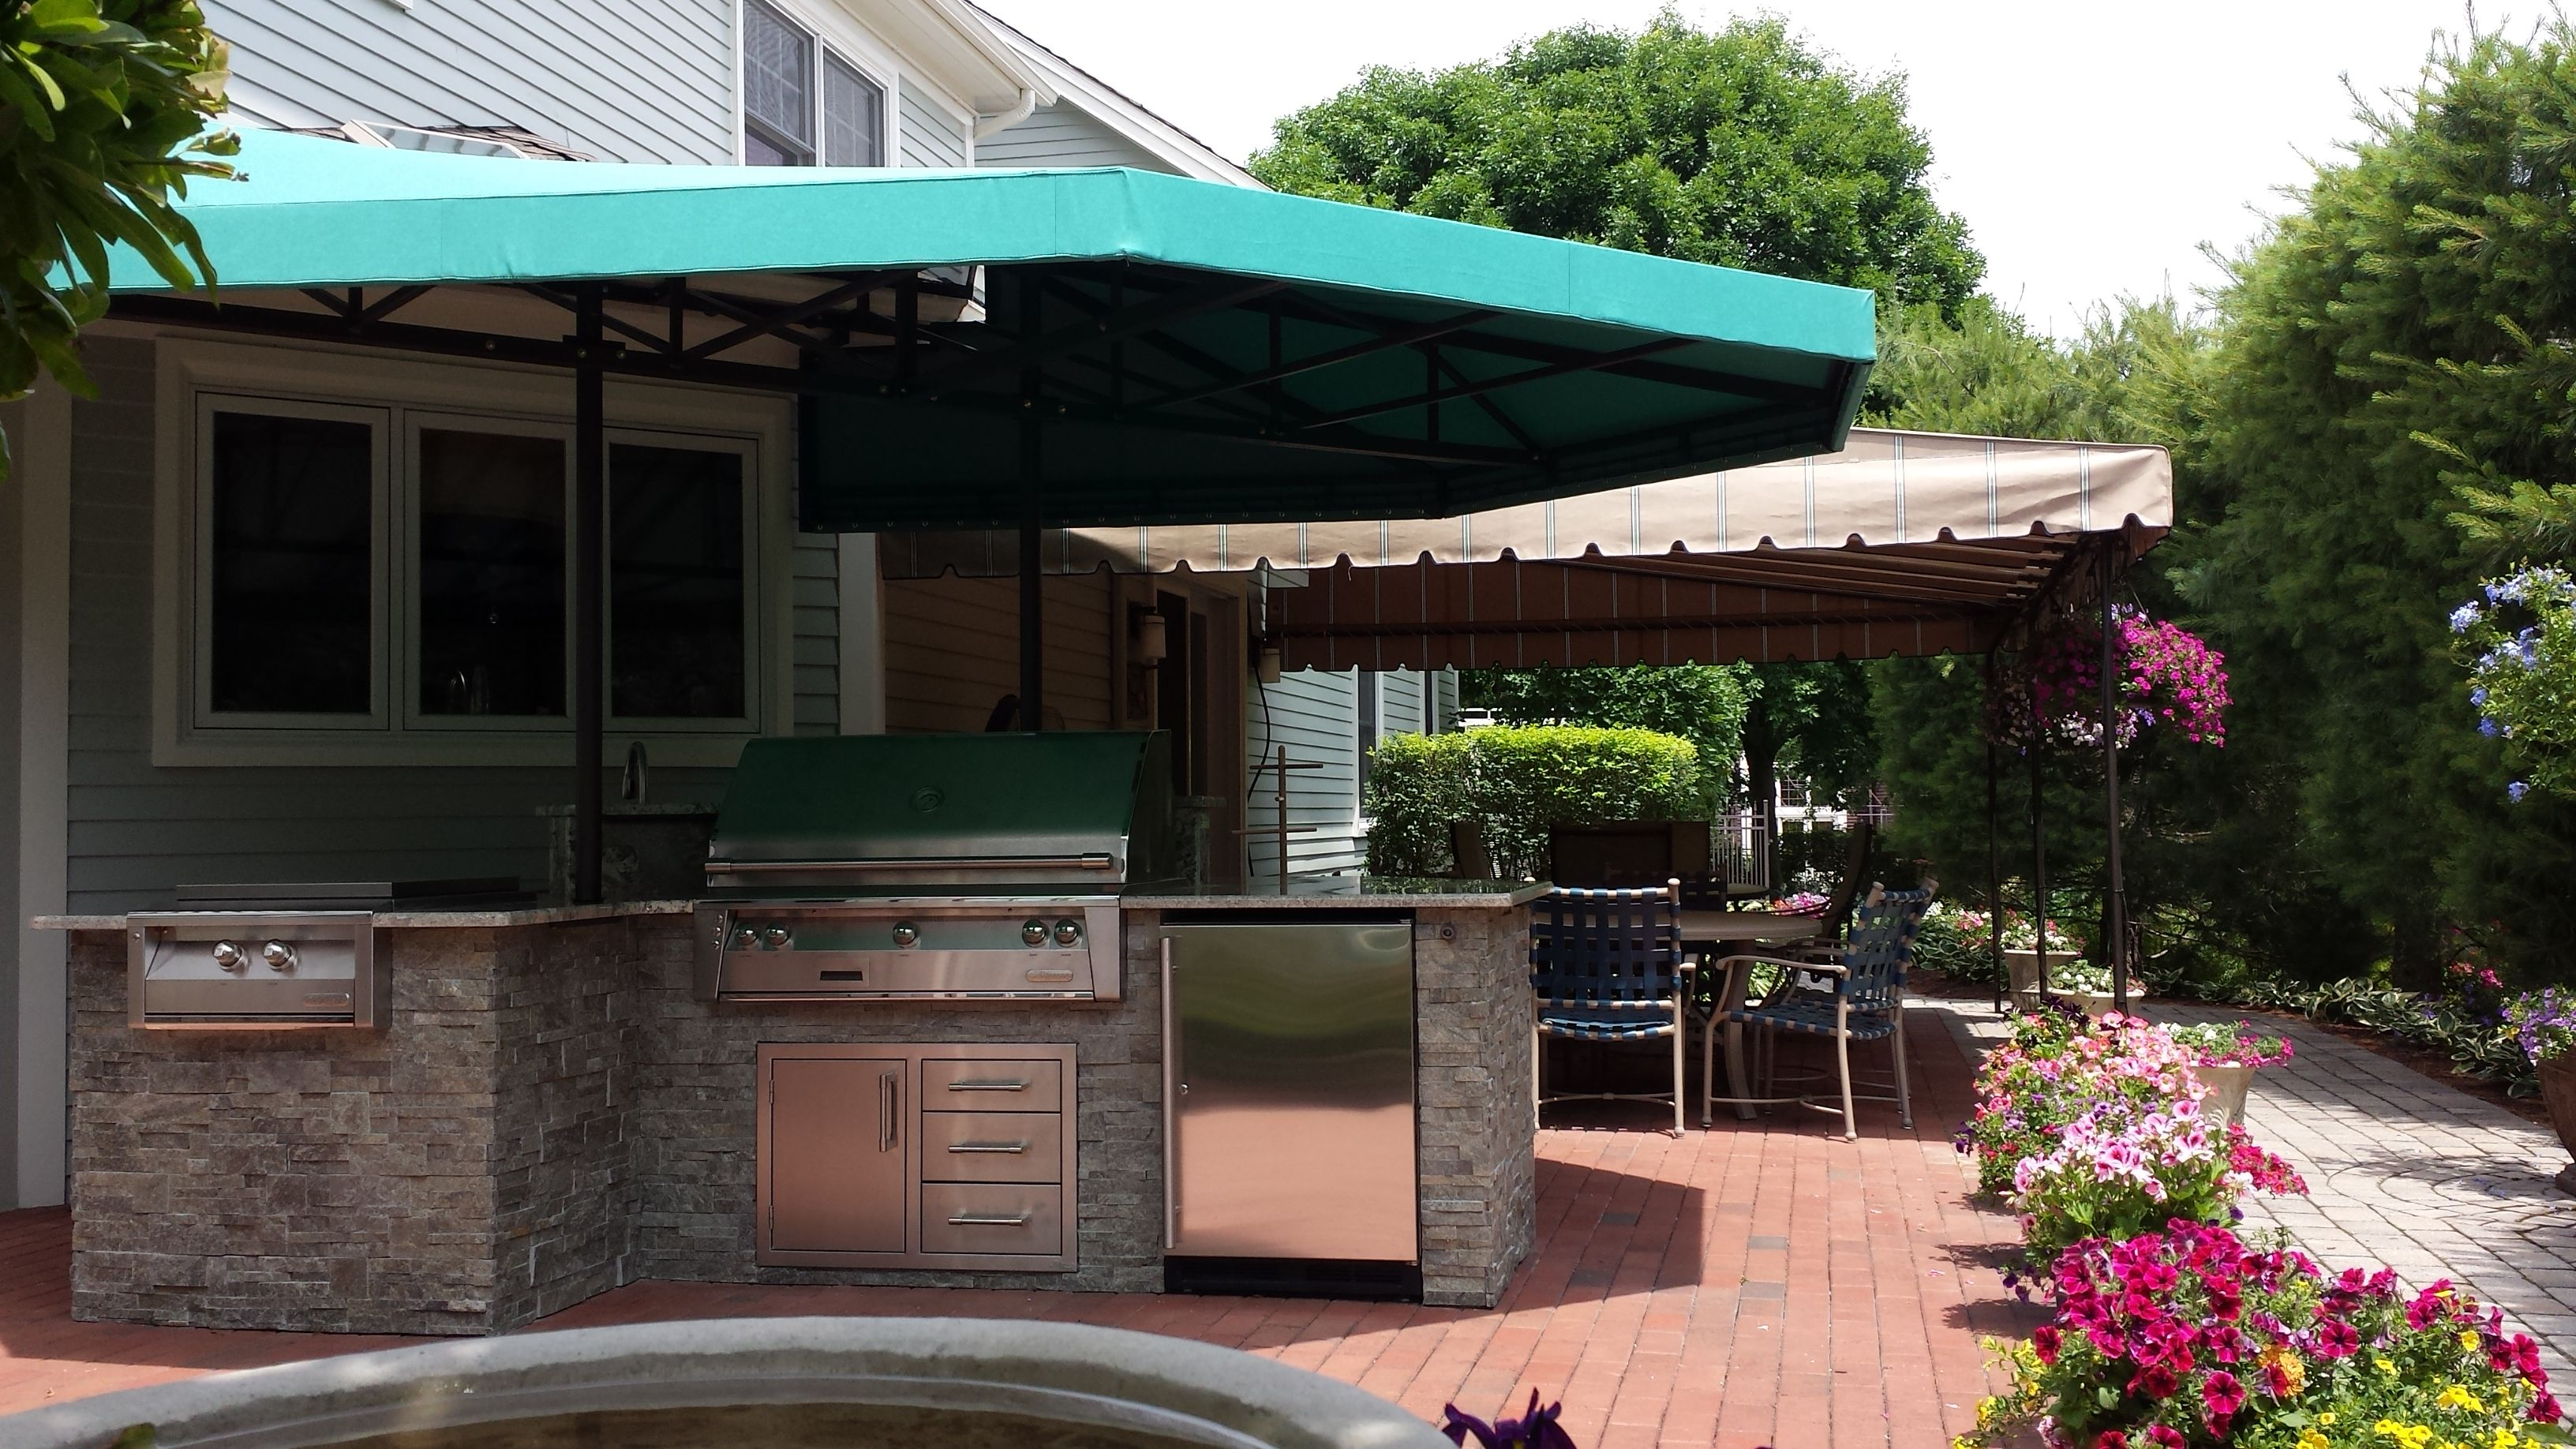 Outdoor Kitchen Canopy Cover Kreider S Canvas Service Inc Kitchen Canopy Canopy Cover Outdoor Kitchen